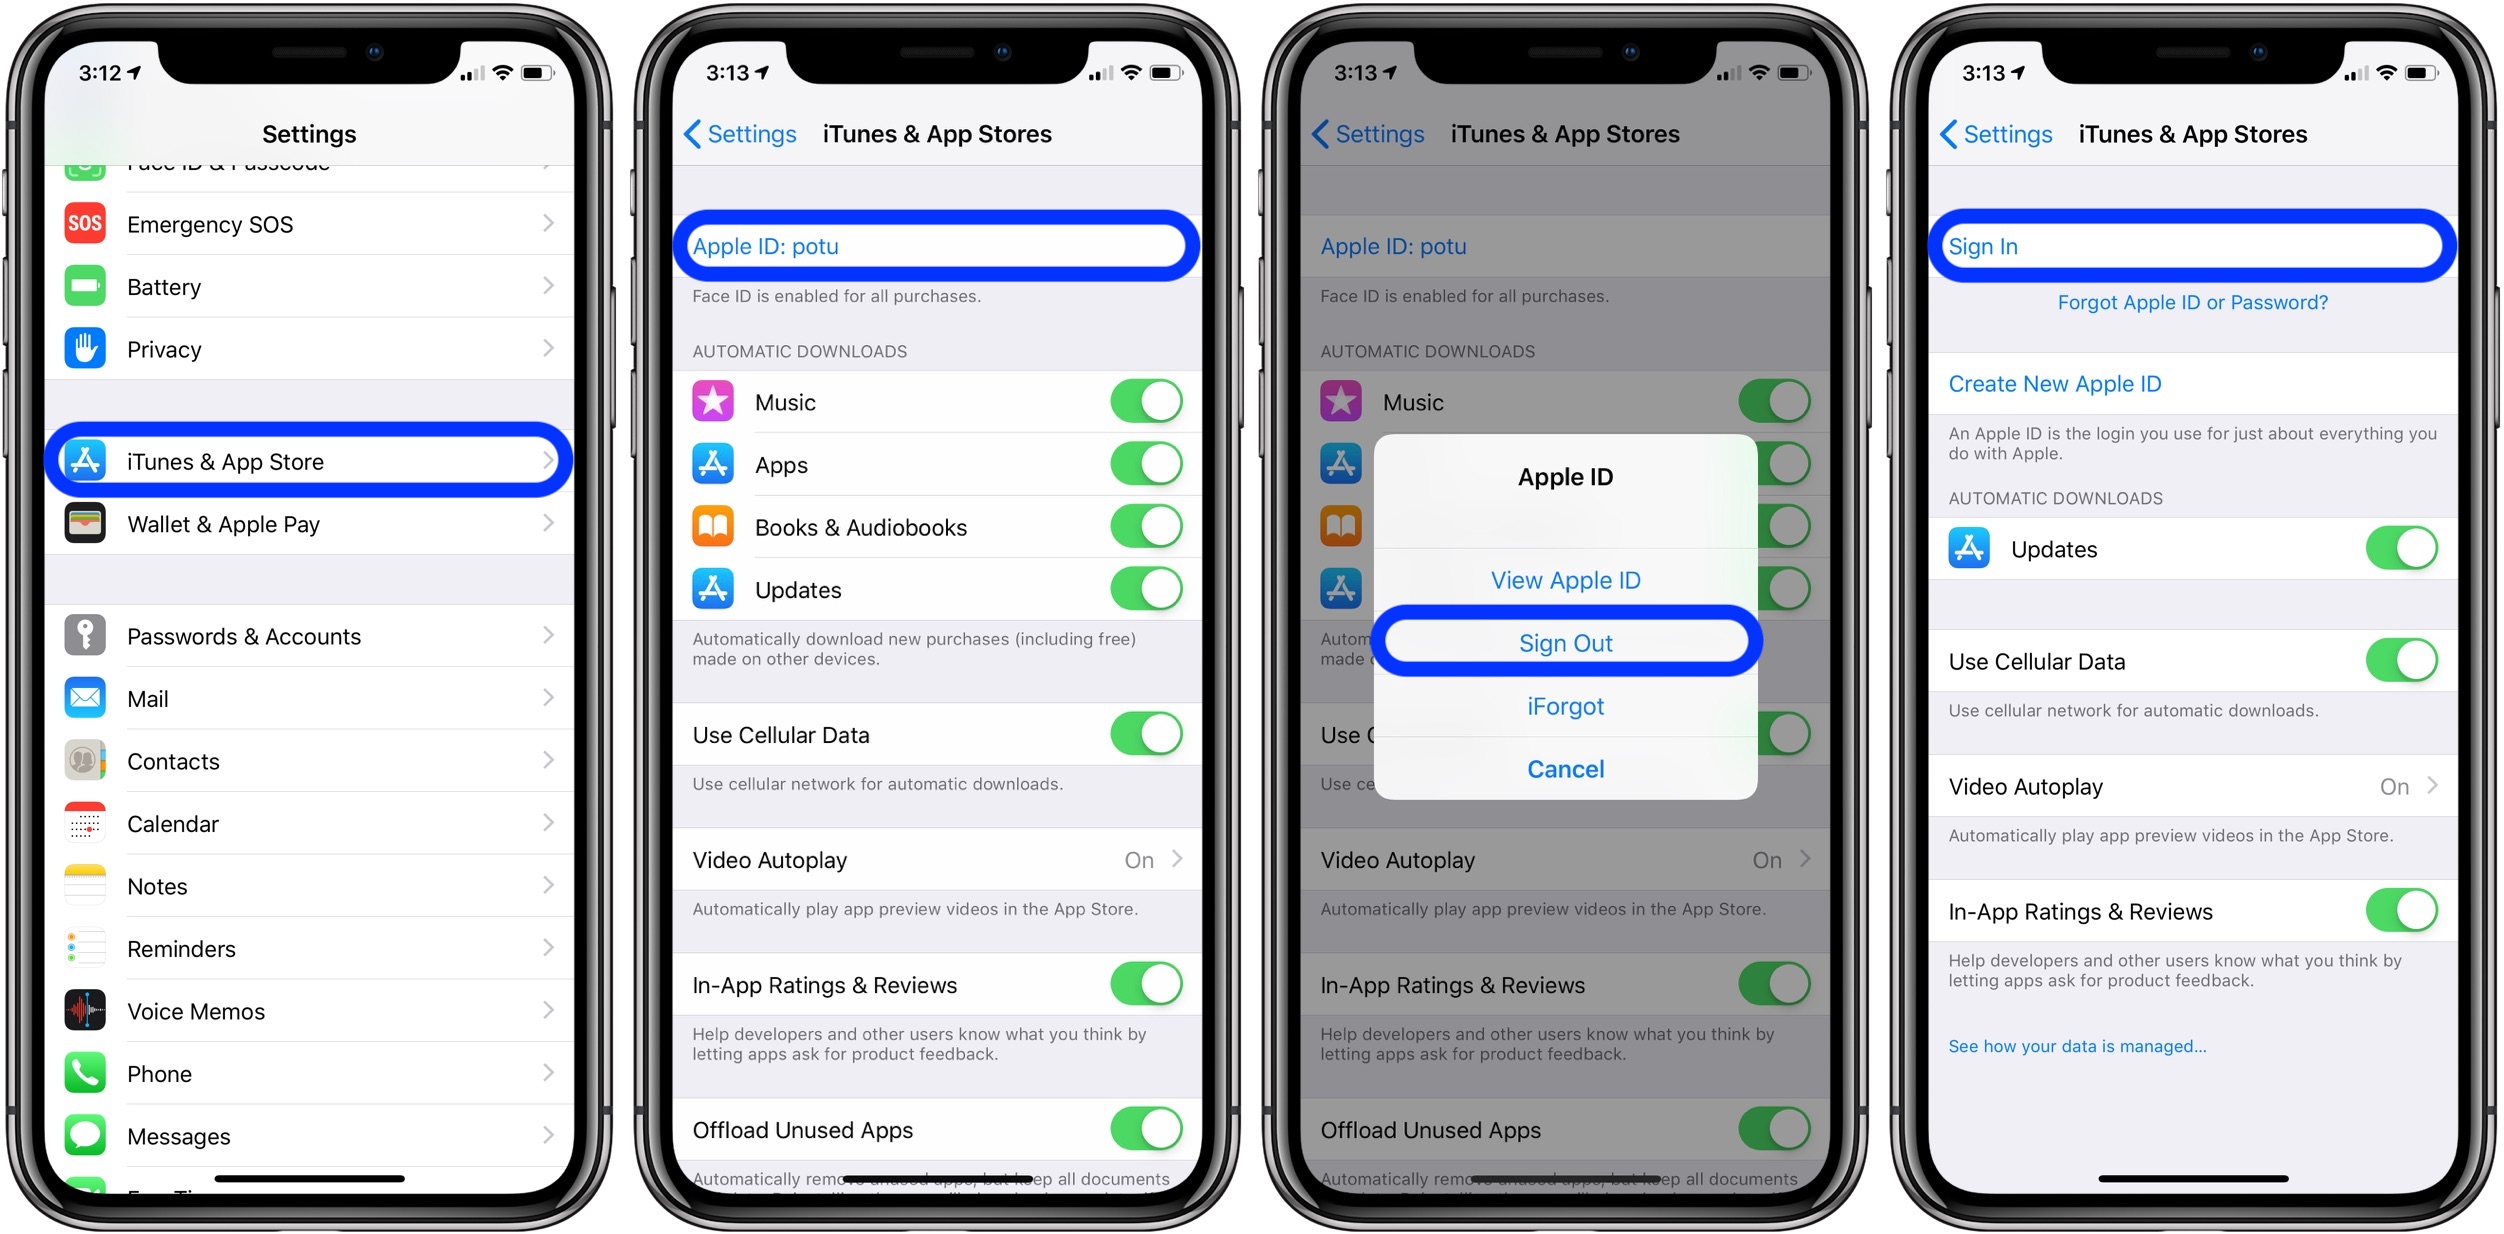 How to change your iTunes and App Store Apple ID on iPhone